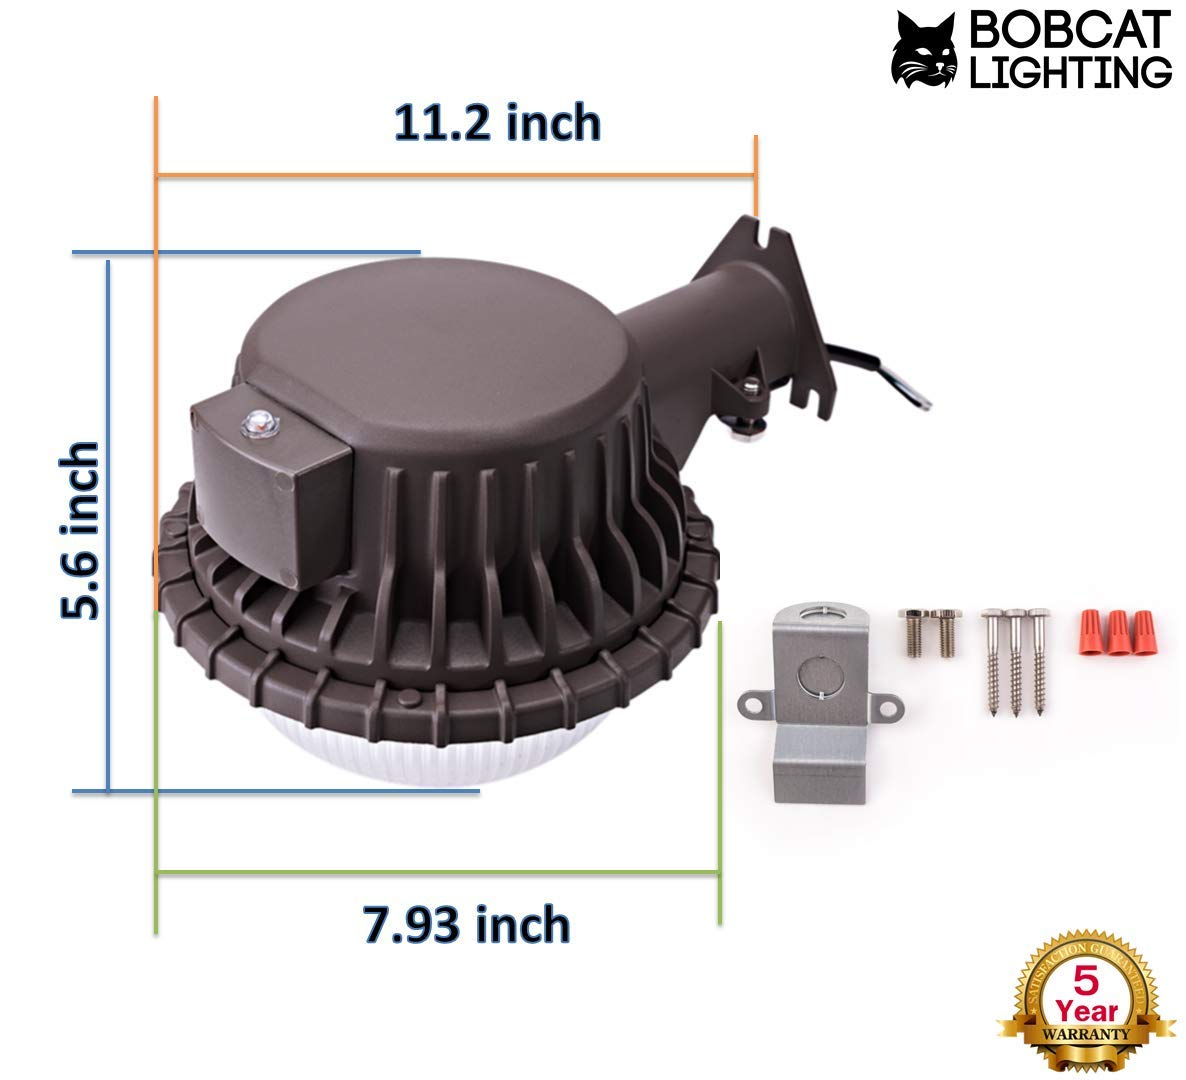 Led Area Light 80 Watts Dusk To Dawn Photocell Included Perfect Pole Mounted Security Wiring Diagram Yard Or Barn 9500 Lumens 5000k Ul Listed Dlc 700w Incandescent 200w Hid